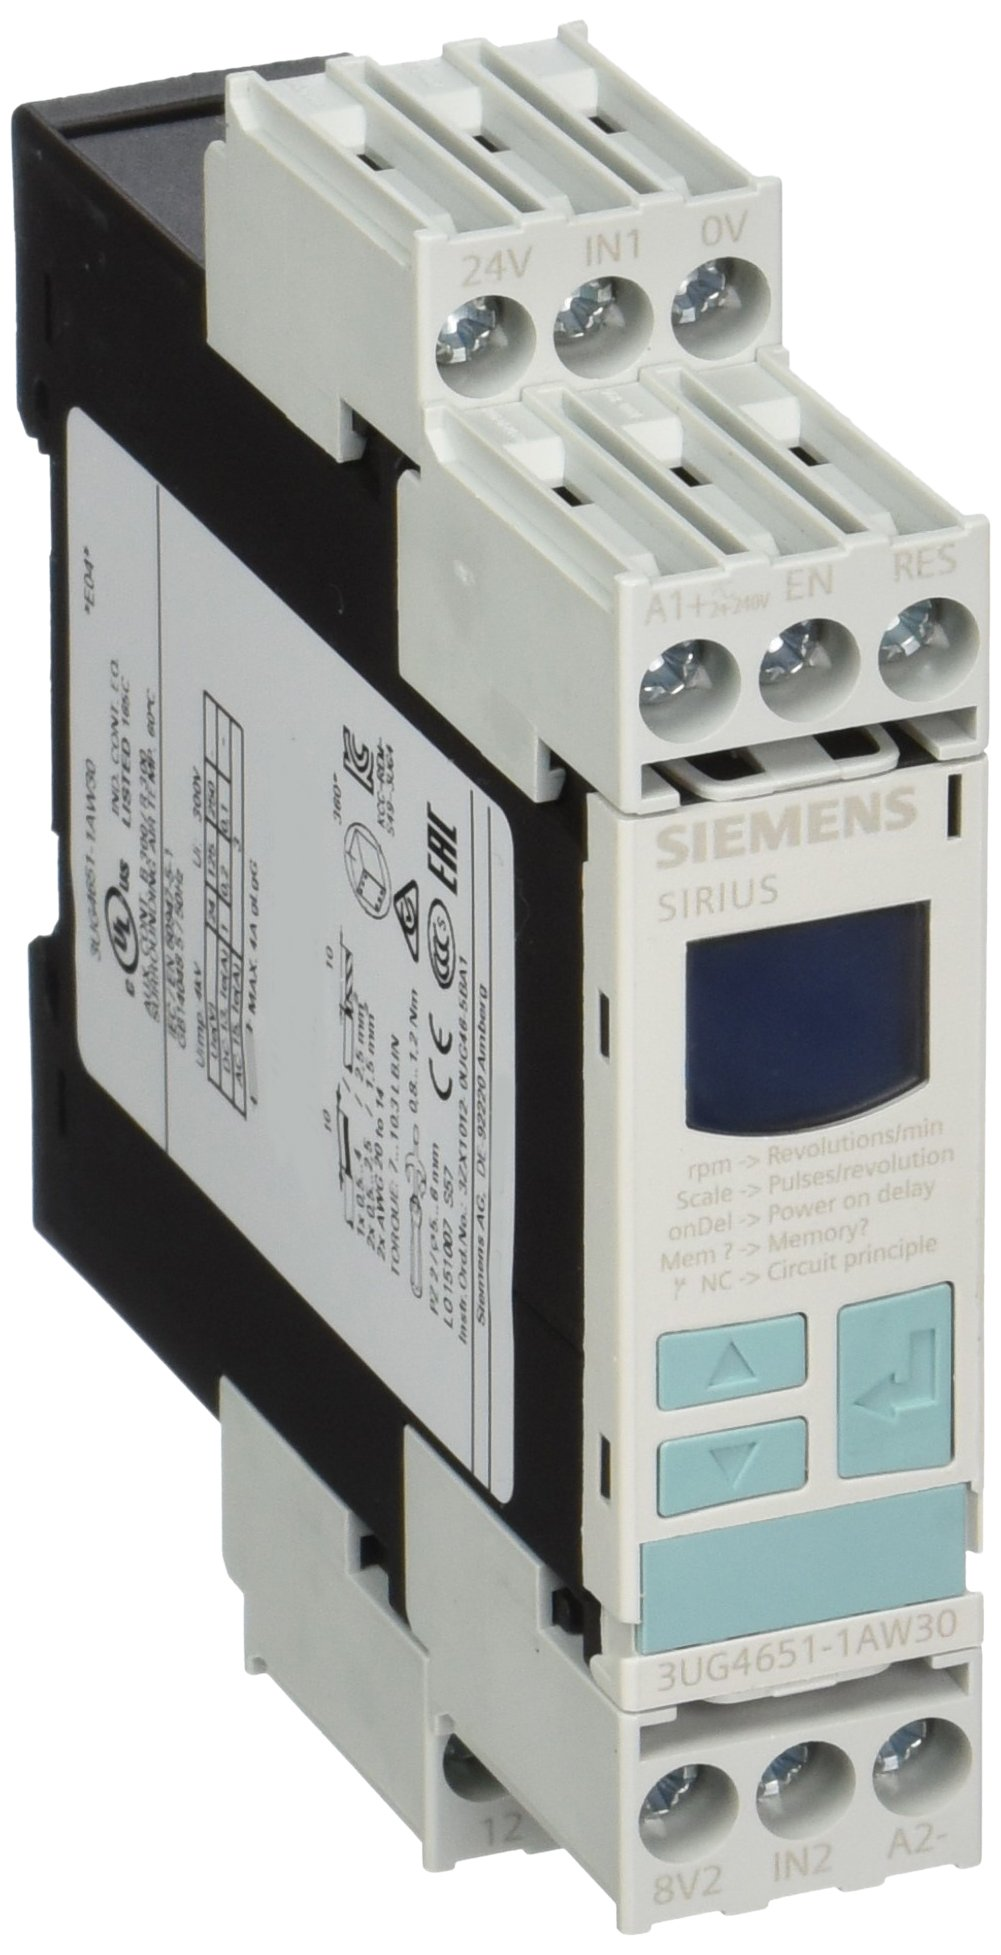 Siemens 3UG46 51-1AW30 Speed Monitoring Relay, Screw Terminals, 0.1-2200rpm Measuring Range, Off, 0.1-99.9rpm Hysteresis, 0-900s On Delay Time, 0.1-99.9s Tripping Delay Time, 1-10Pulses Per Revolution, 24-240VAC/VDC Control Supply Voltage by SIEMENS